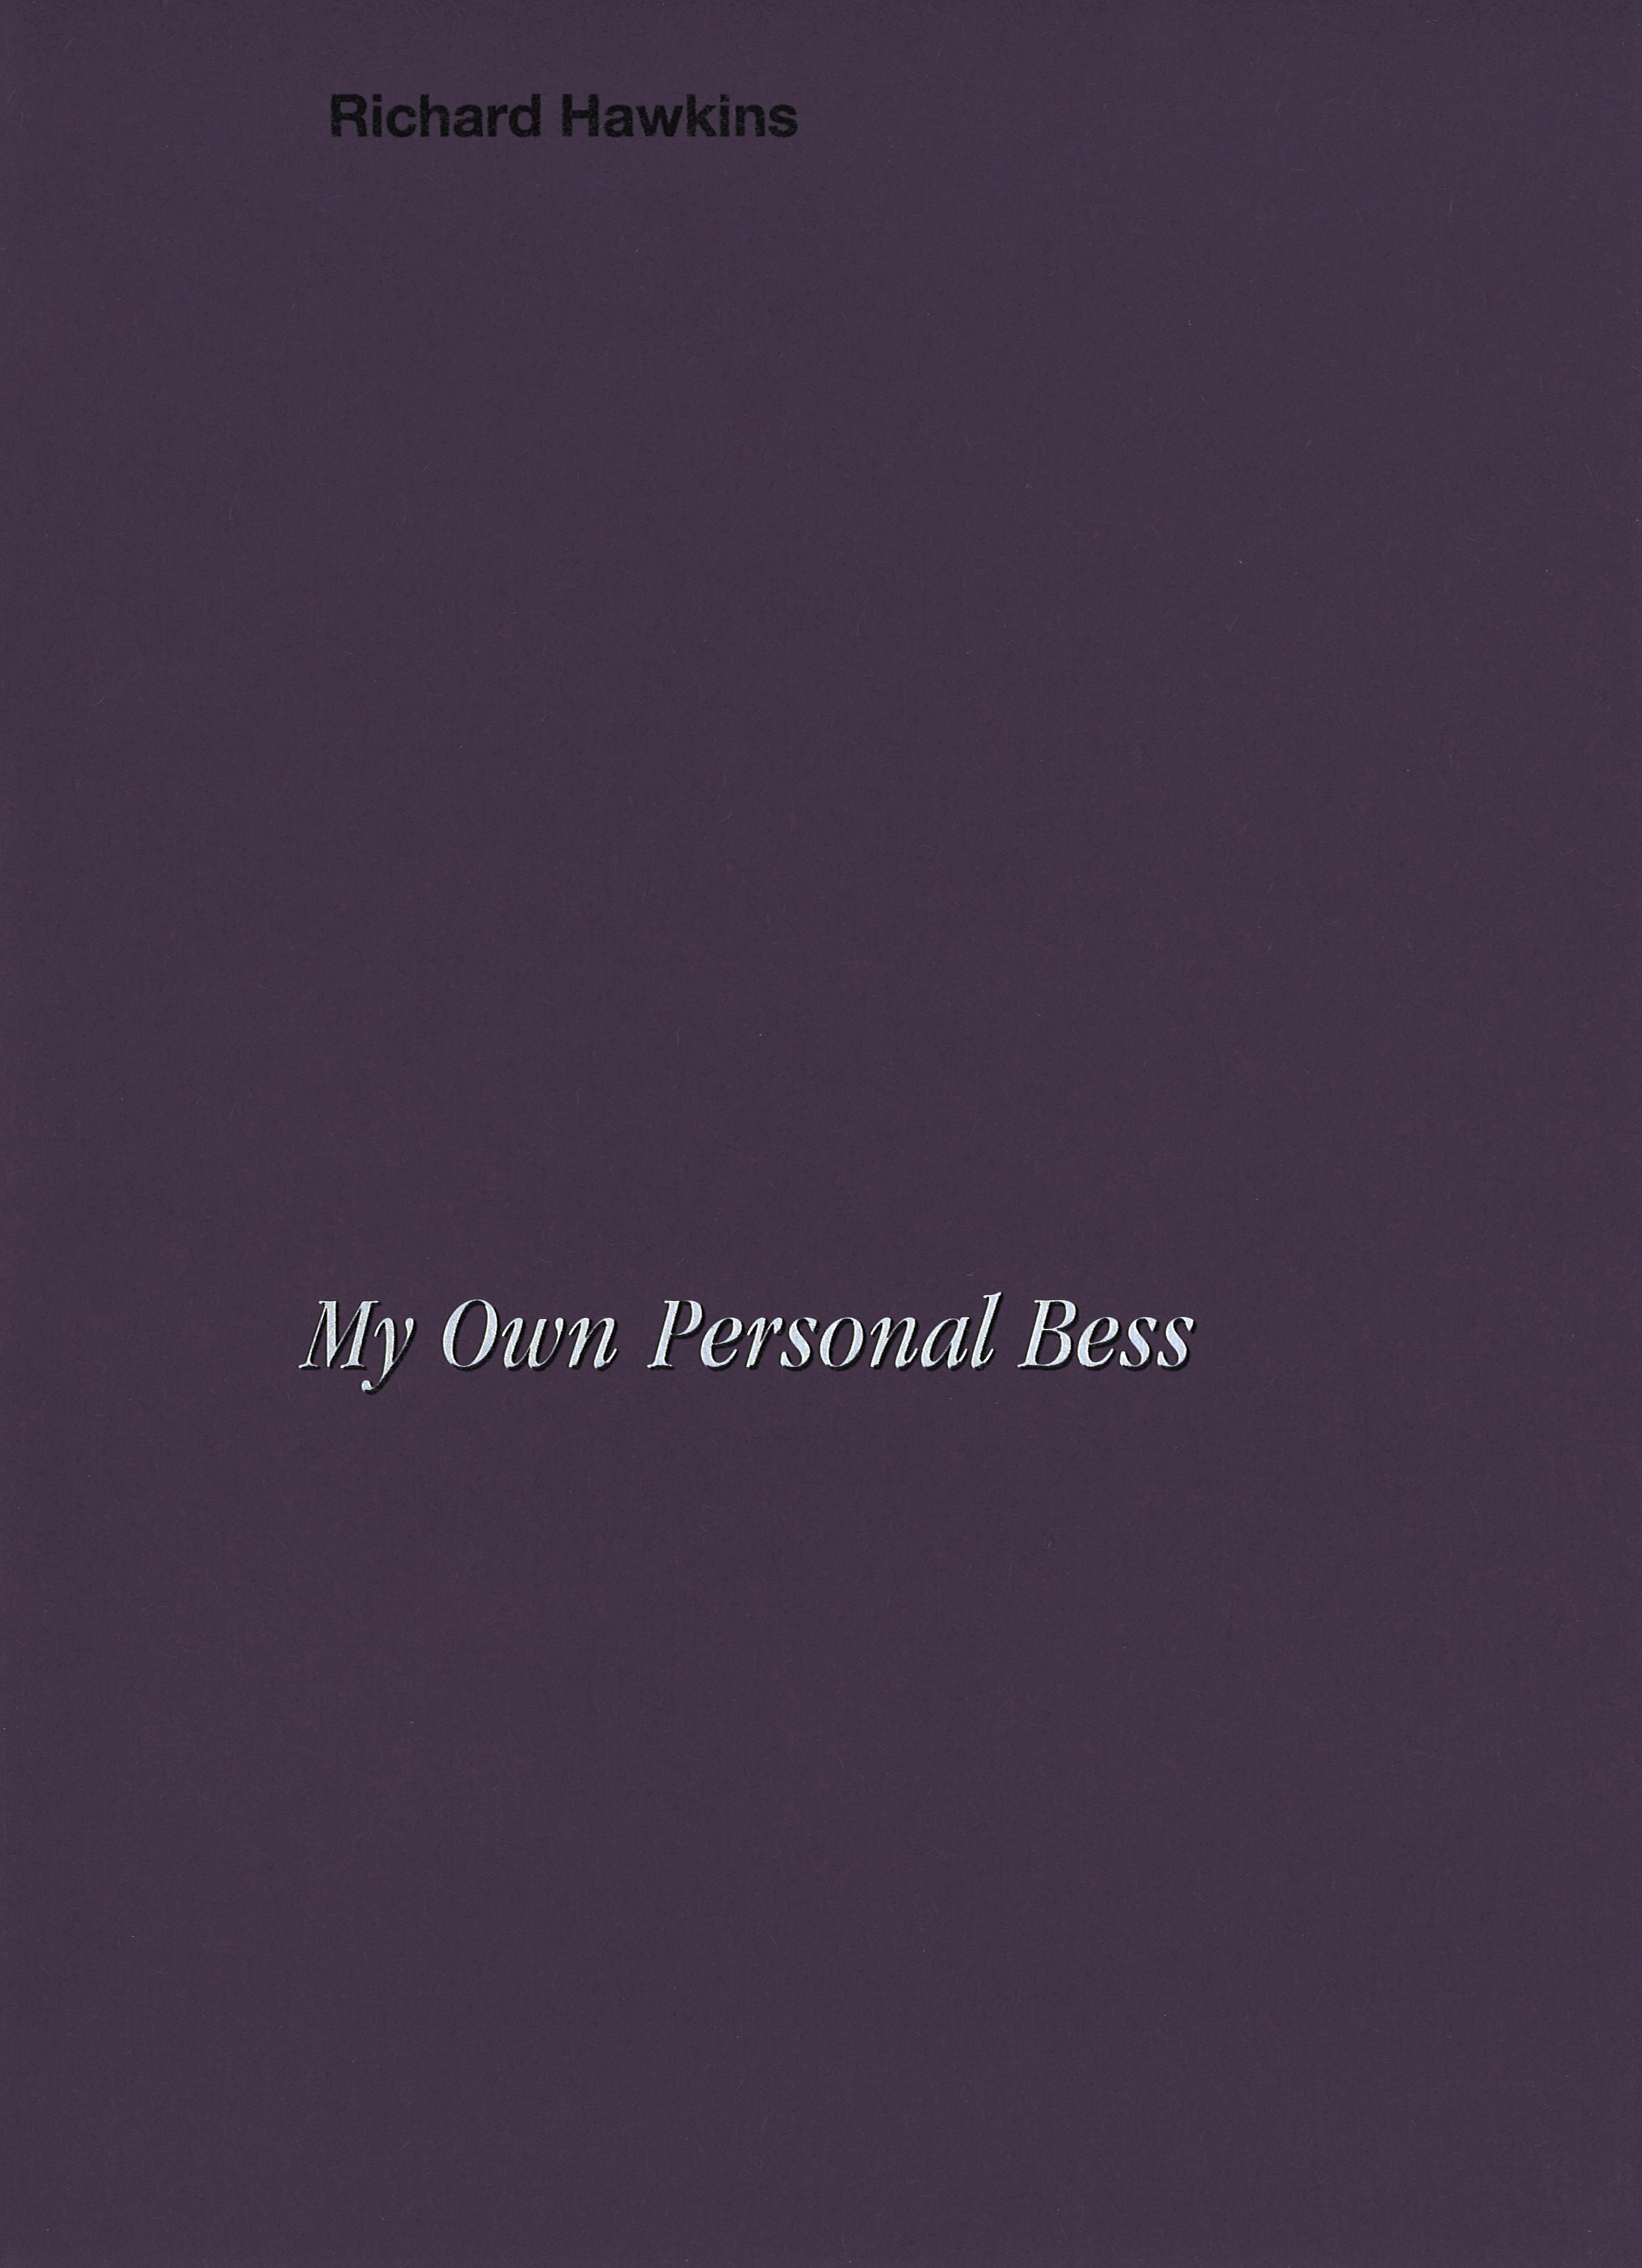 "Richard Hawkins – My Own Personal Bess 2020, 32 pages, Owrps, fully illustrated in color, silkscreened cover, 27,5 x 19,8 cm Euro 18,- – For his artist's book ""My Own Personal Bess"" Richard Hawkins has overlaid reproductions of Forrest Bess's paintings into pages of the seminal 1981 Texas Monthly article ""His Name Was Forrest Bess"" by Michael Ennis. This book is published on the occasion of the exhibition Forrest Bess at Fridericianum, Kassel. It contains full bleed images of 12 collages together with a text by Richard Hawkins."